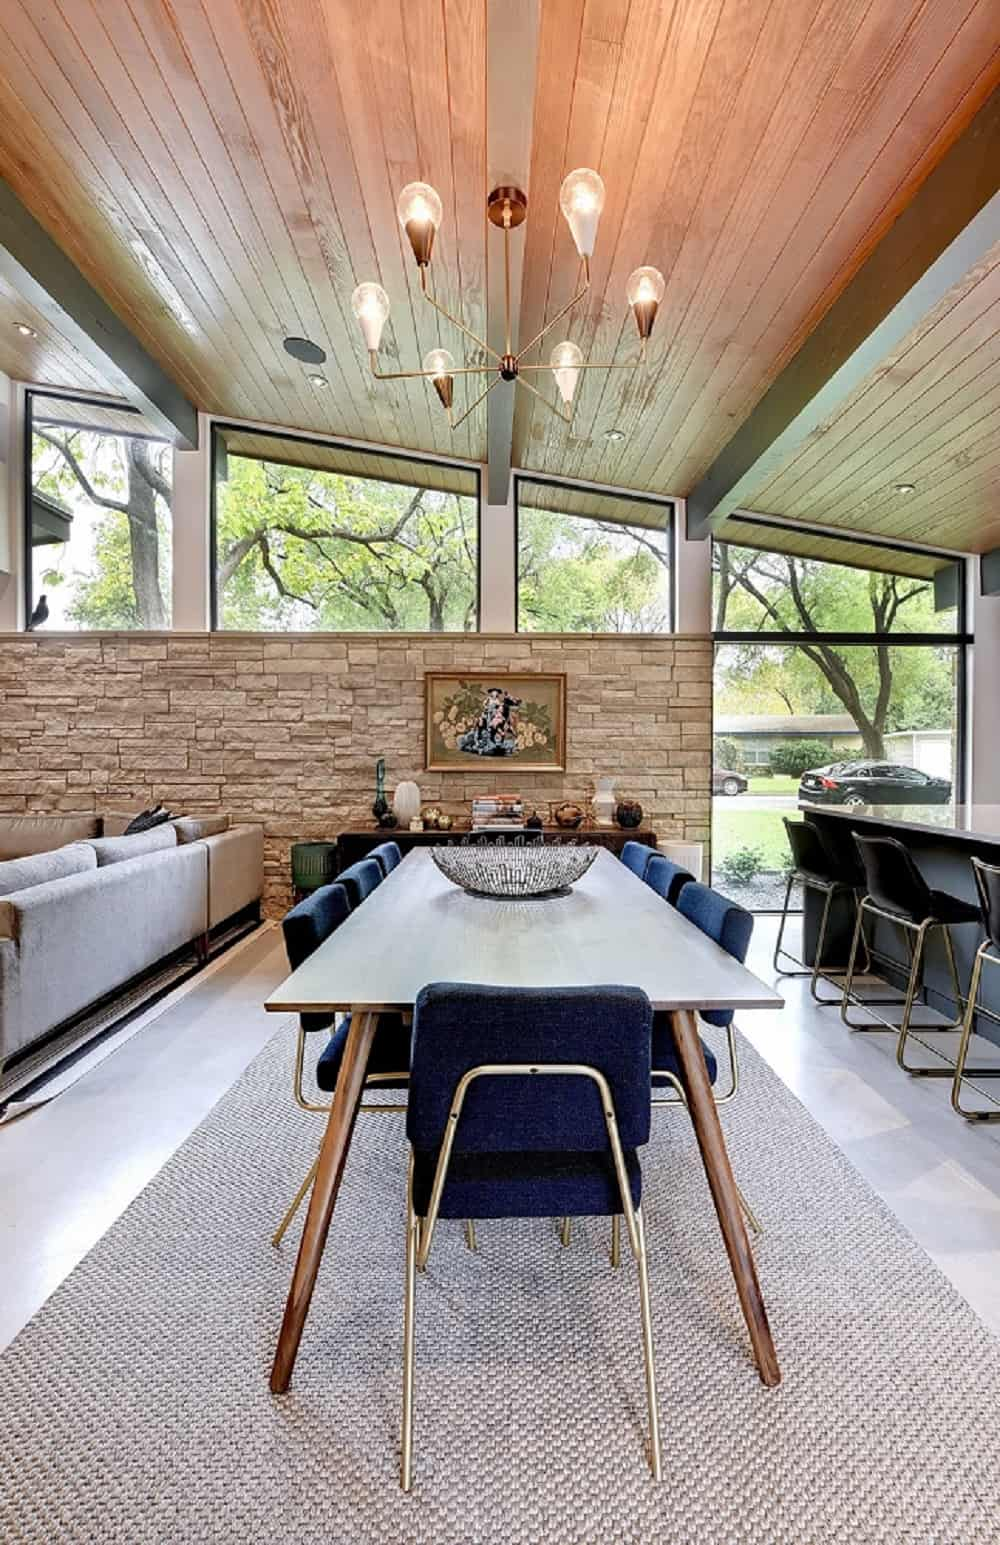 Dining area in the Re-Open House designed by Matt Fajkus Architecture.